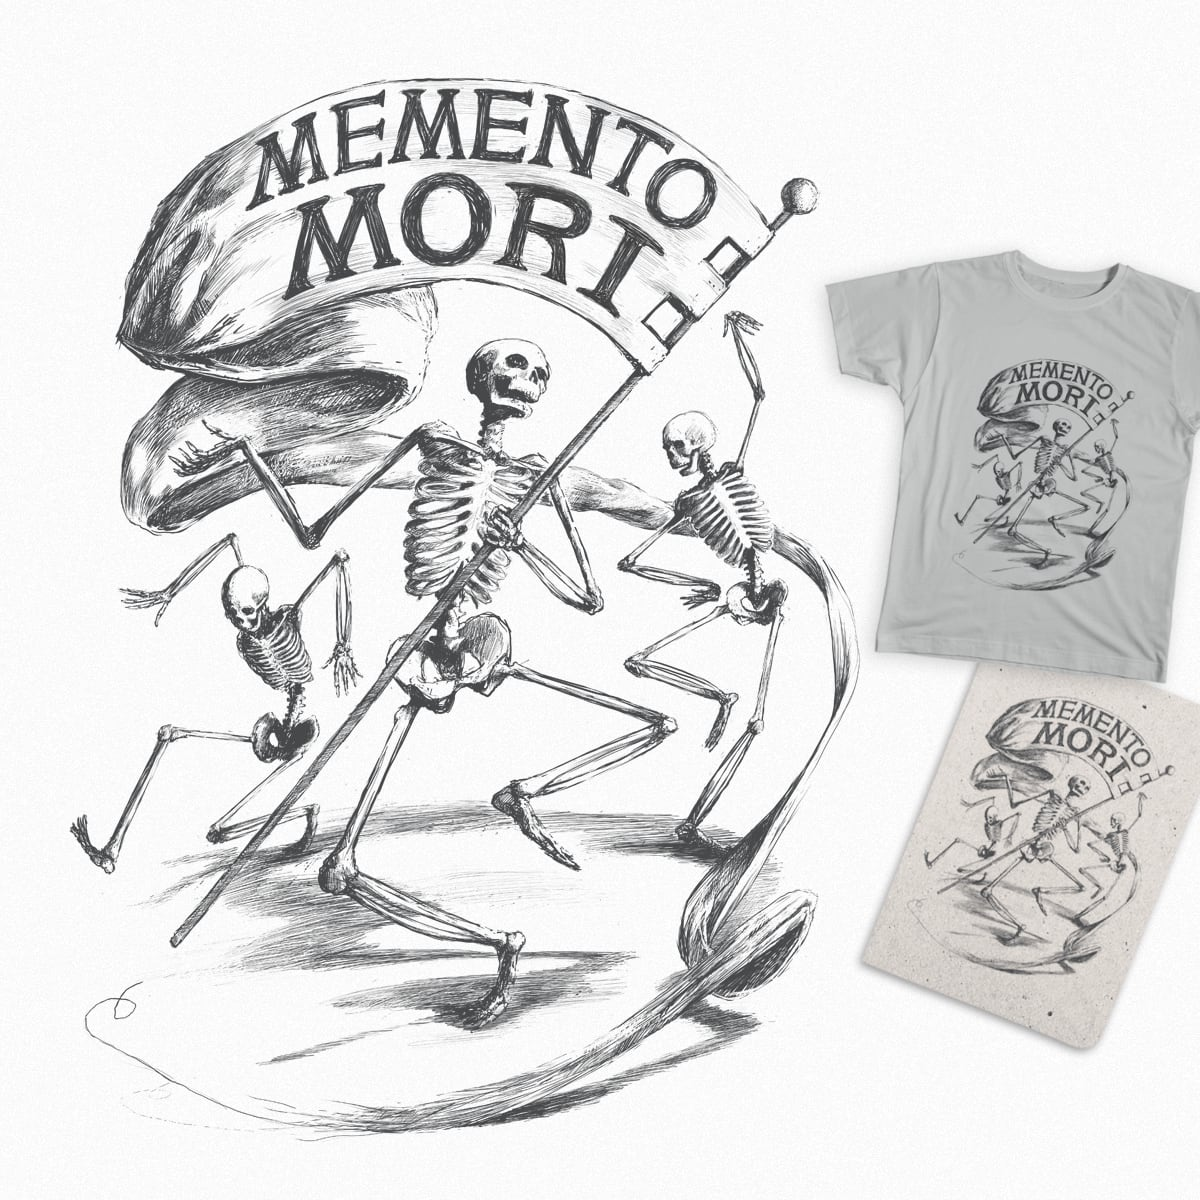 Memento Mori by Ian Coburn on Threadless